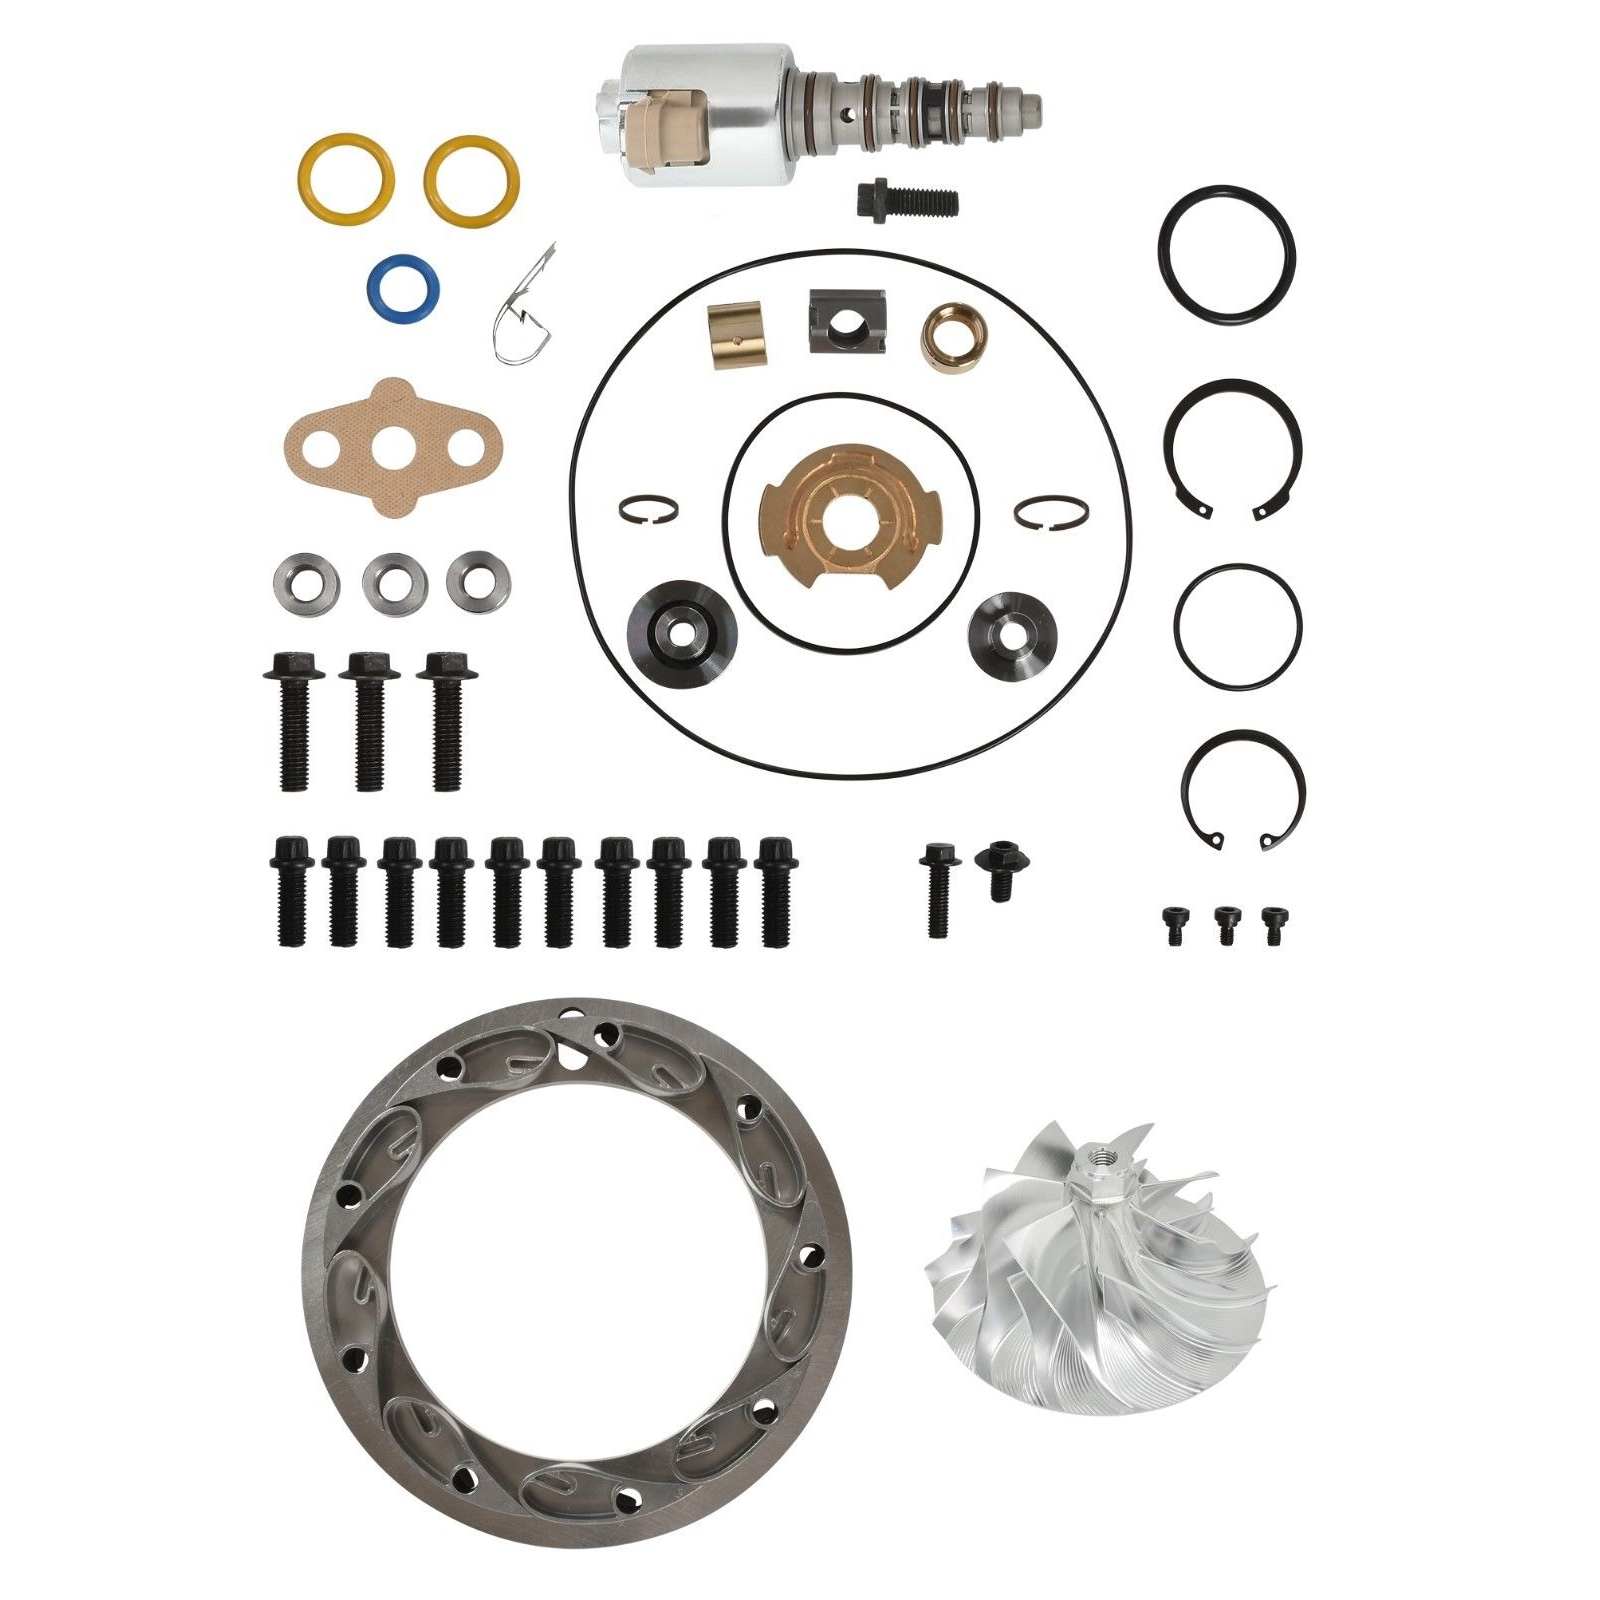 GT3782VA Turbo Rebuild Kit Billet Wheel Unison Ring 15mm Vanes VGT Solenoid For 03-Early 04 6.0L Ford Powerstroke Diesel